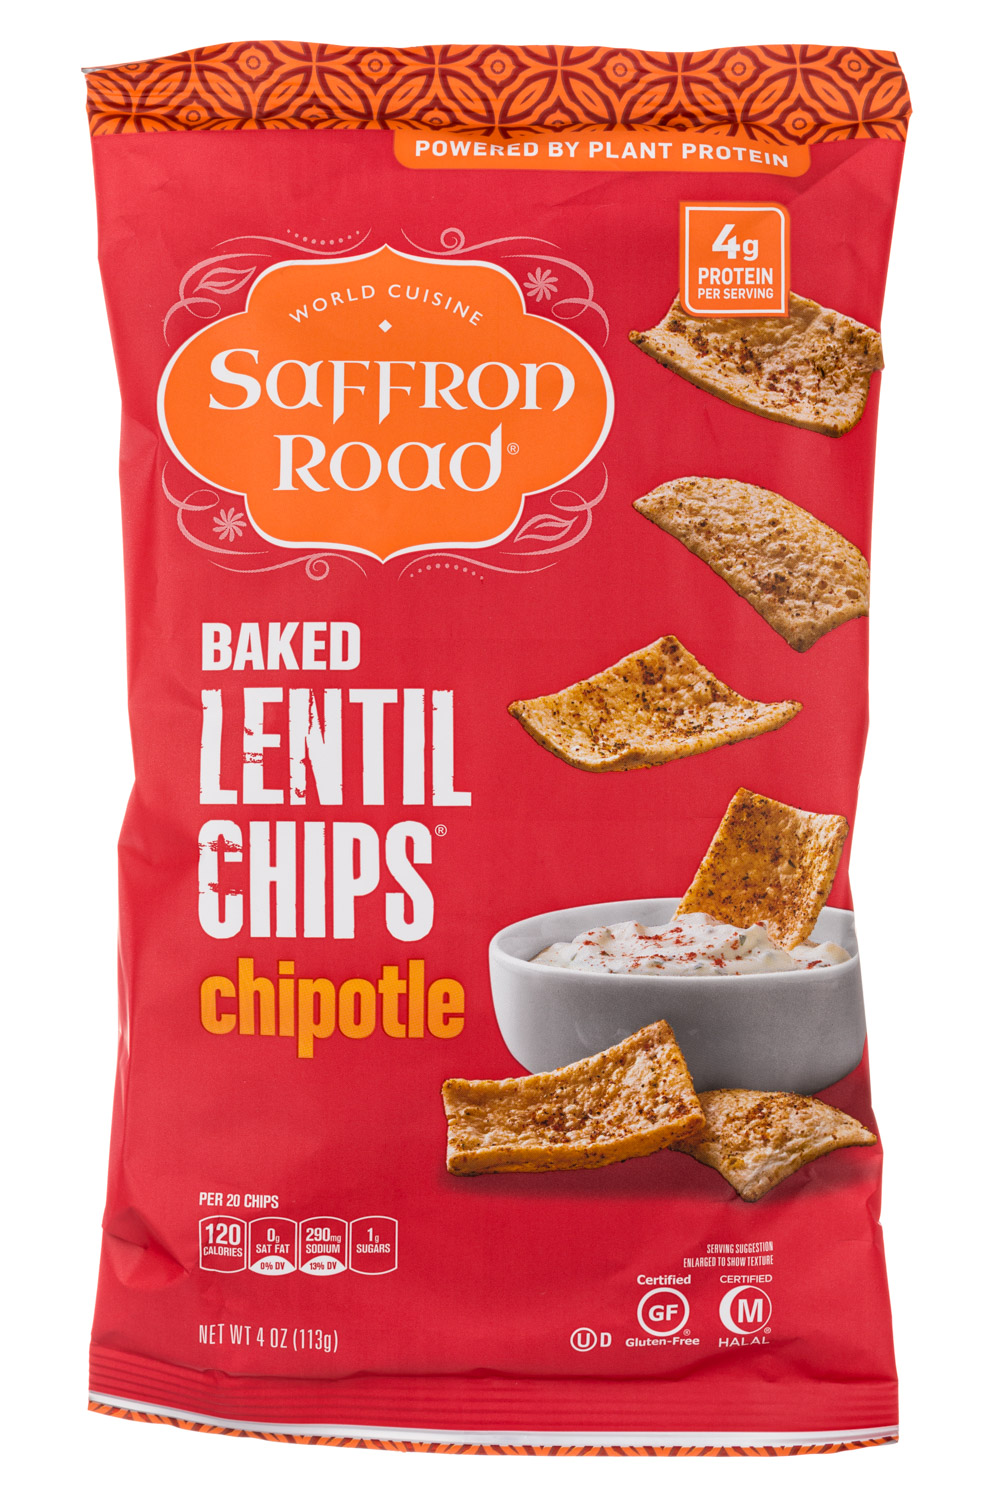 Chipotle Lentil Chips